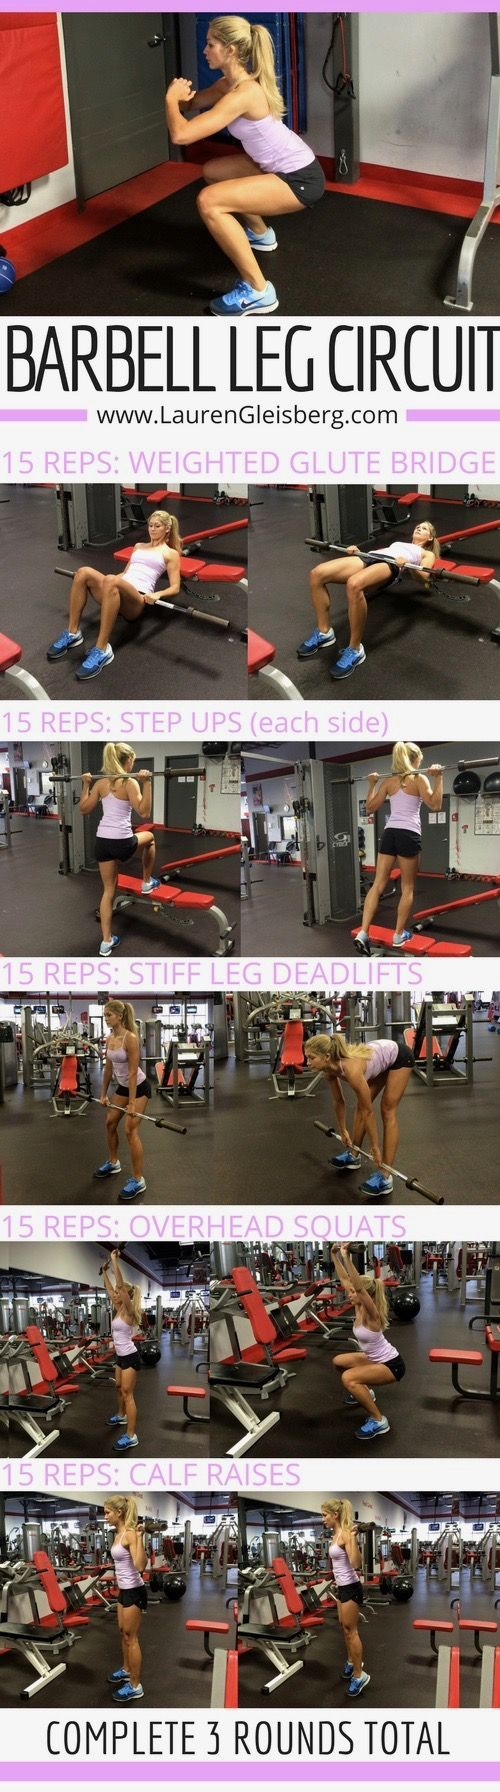 Barbell Leg Workout + My Fav At Home Barbell Set – Lauren Gleisberg